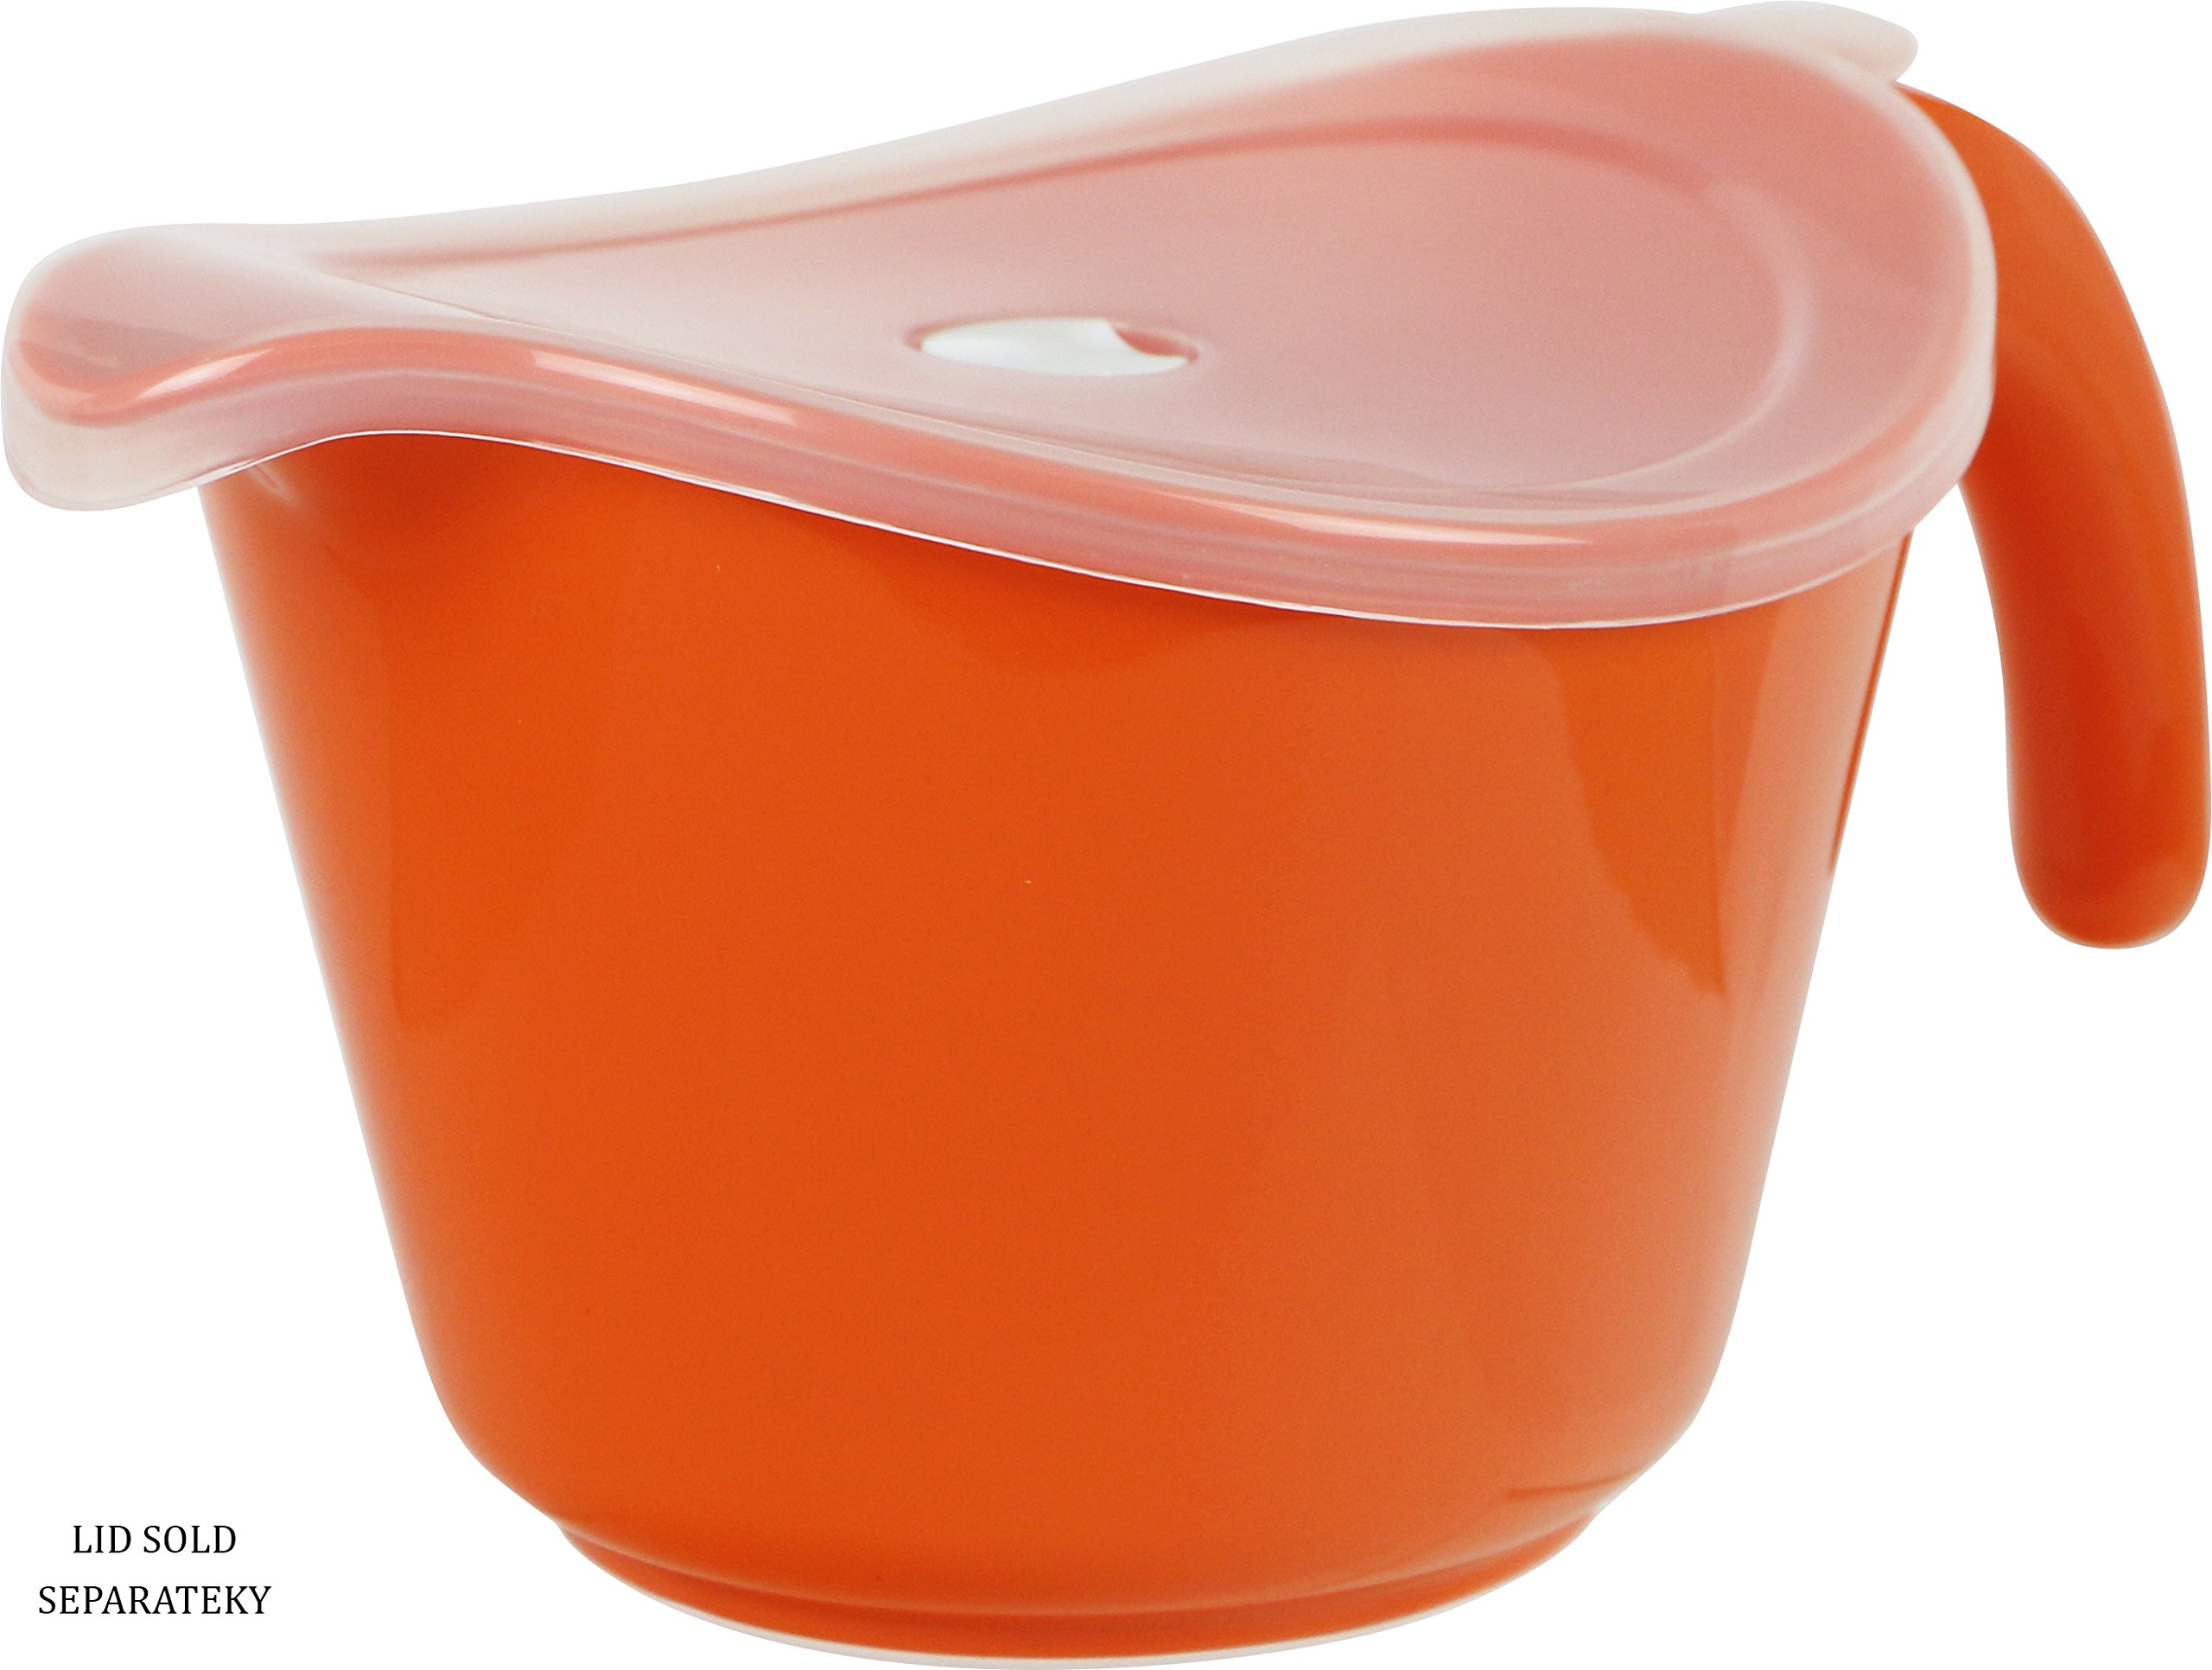 Reston Lloyd 92500 Calypso Basics 2-Quart Microwave Safe Batter Bowl, Orange